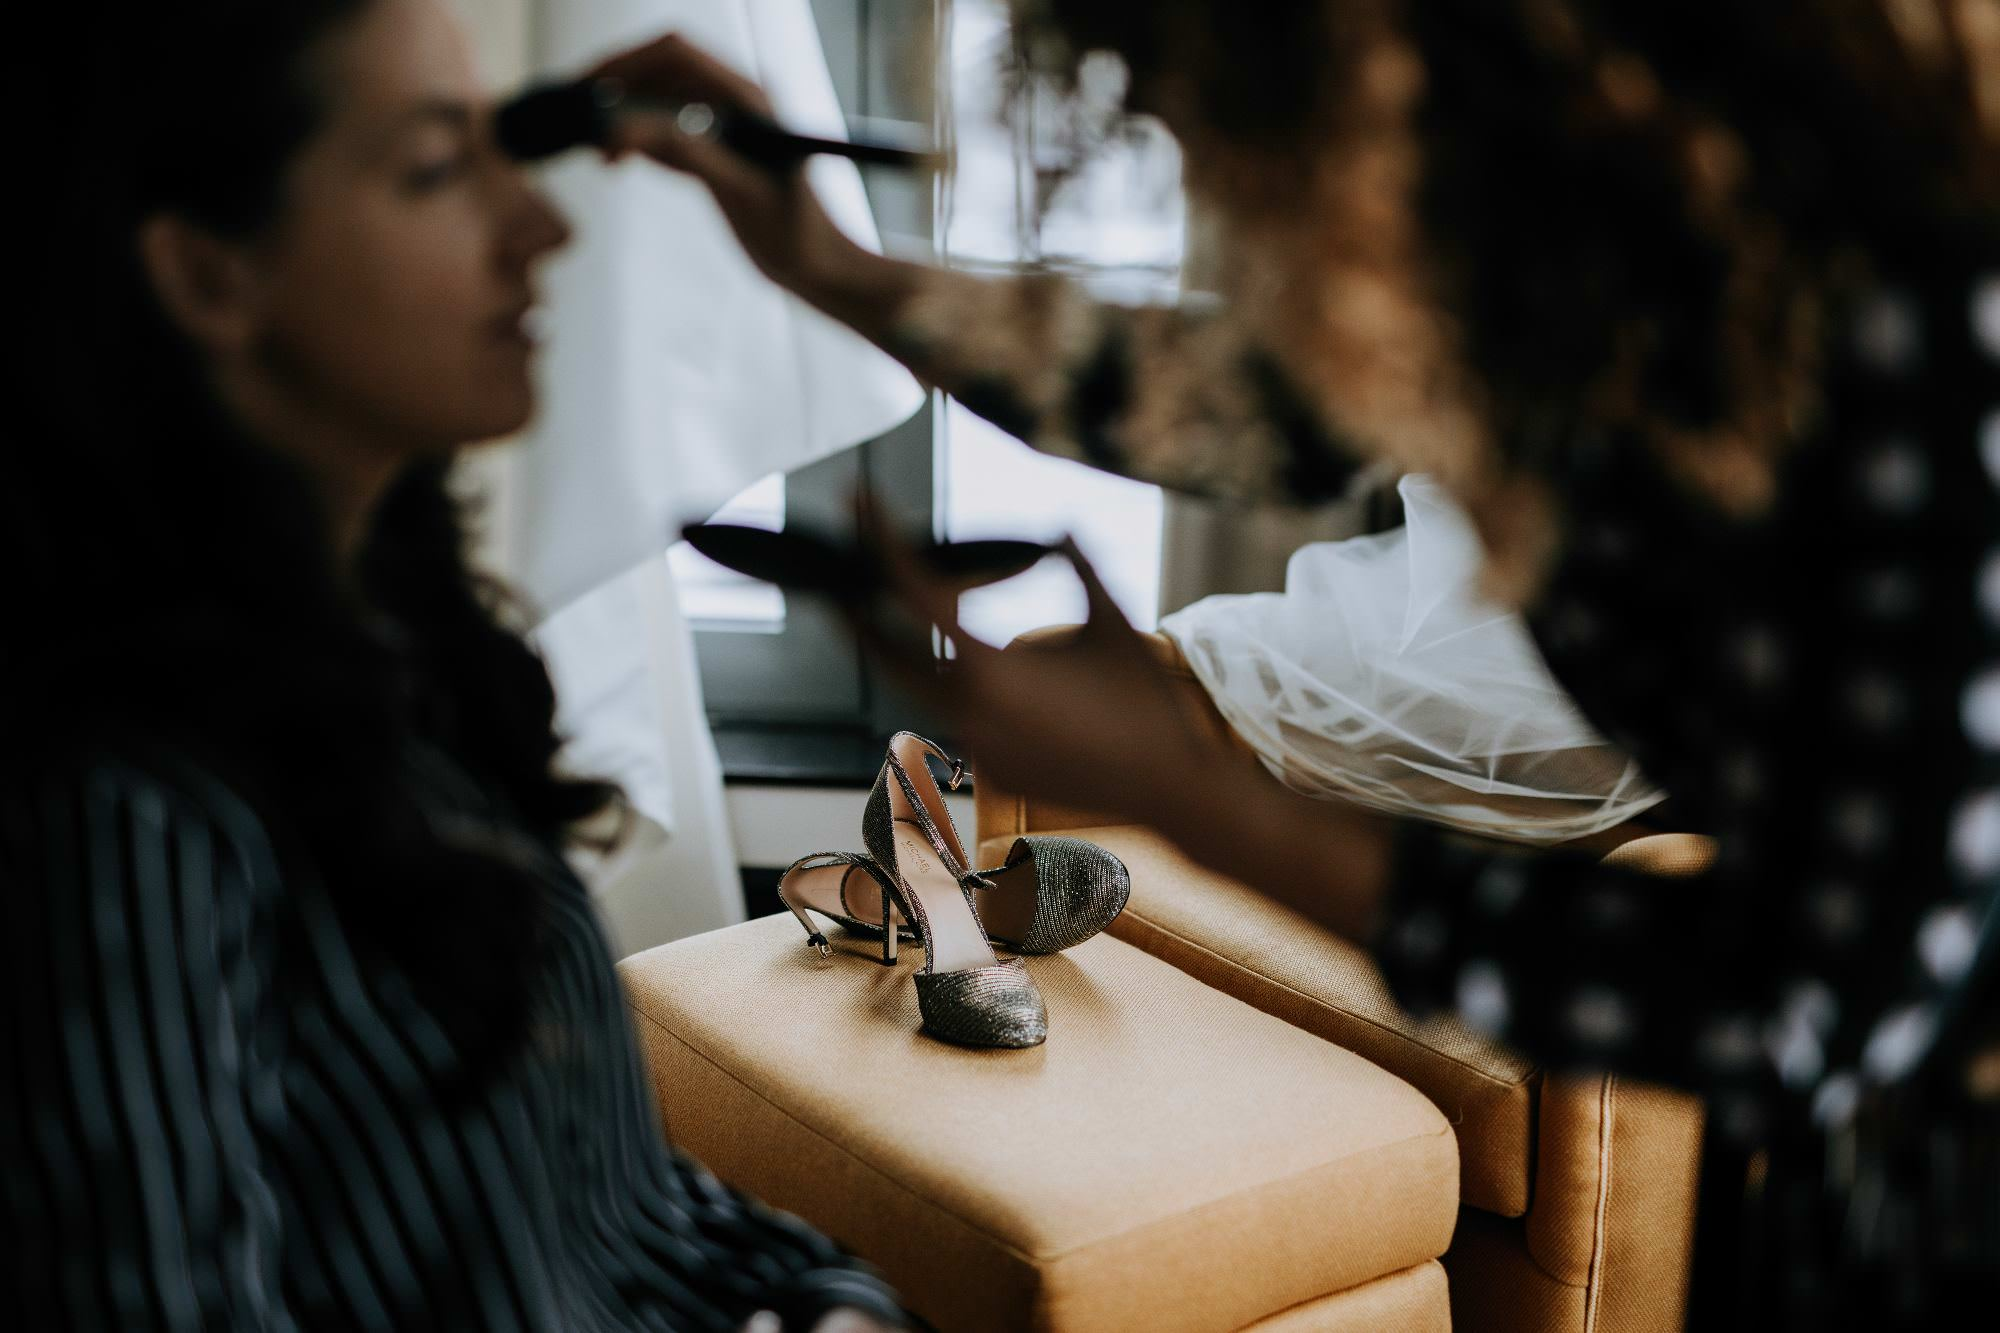 bride's shoes are in focus in the background while bridesmaid gets makeup done